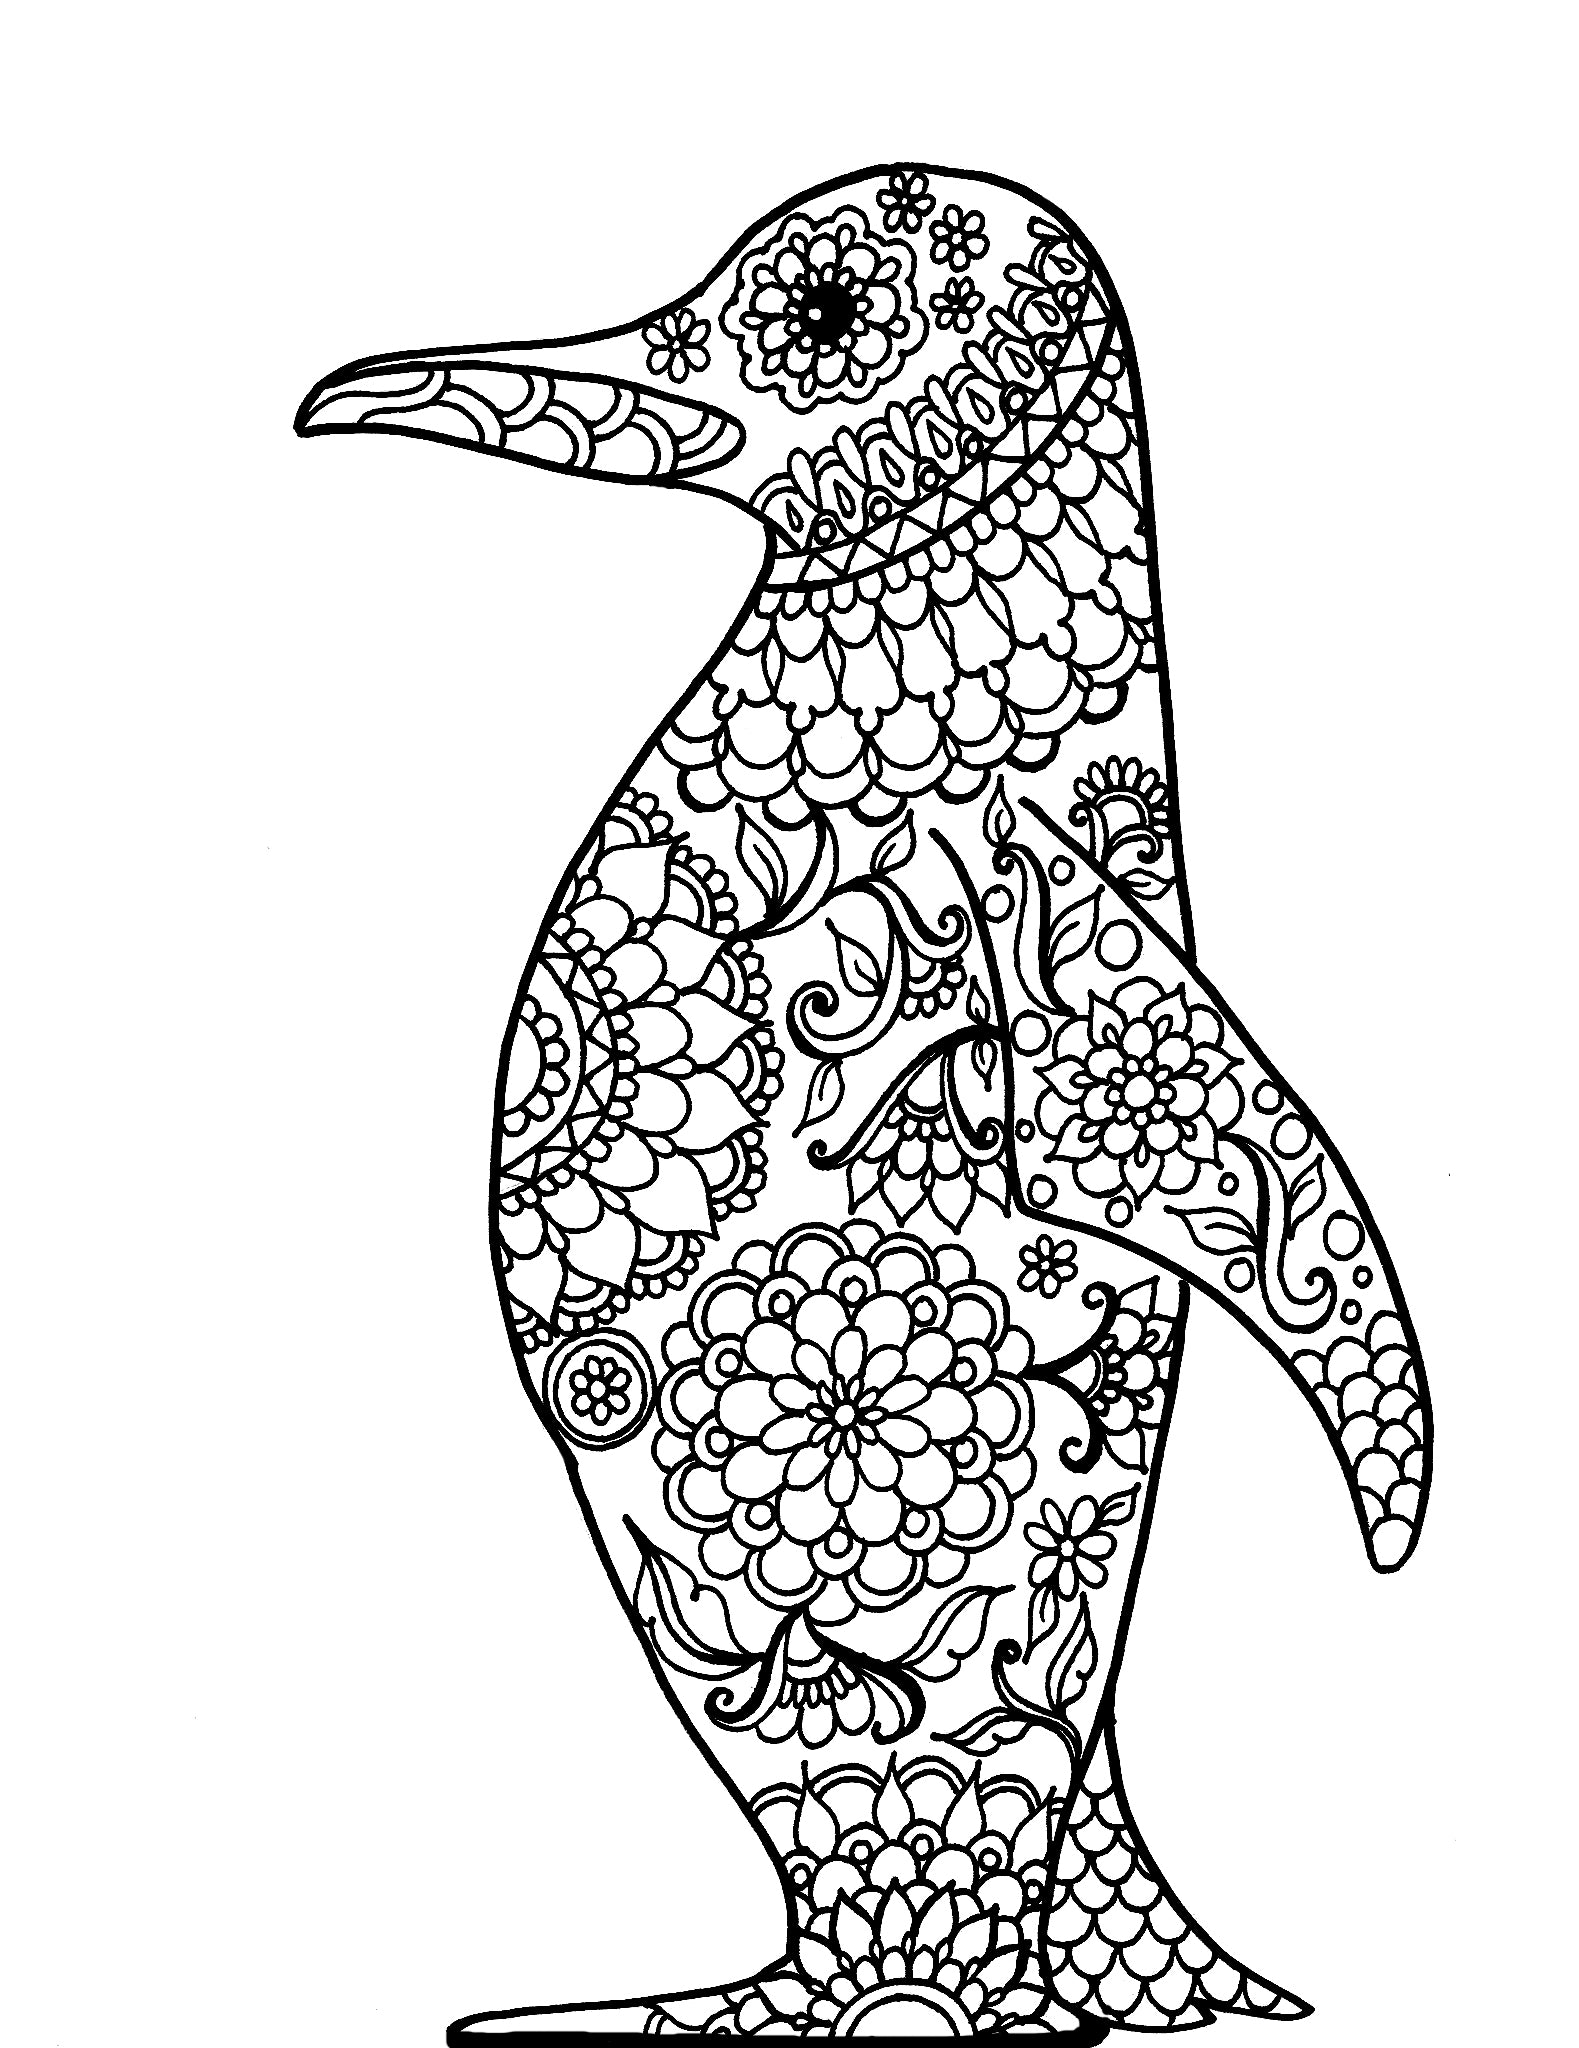 Mandala Penguin - You-Color